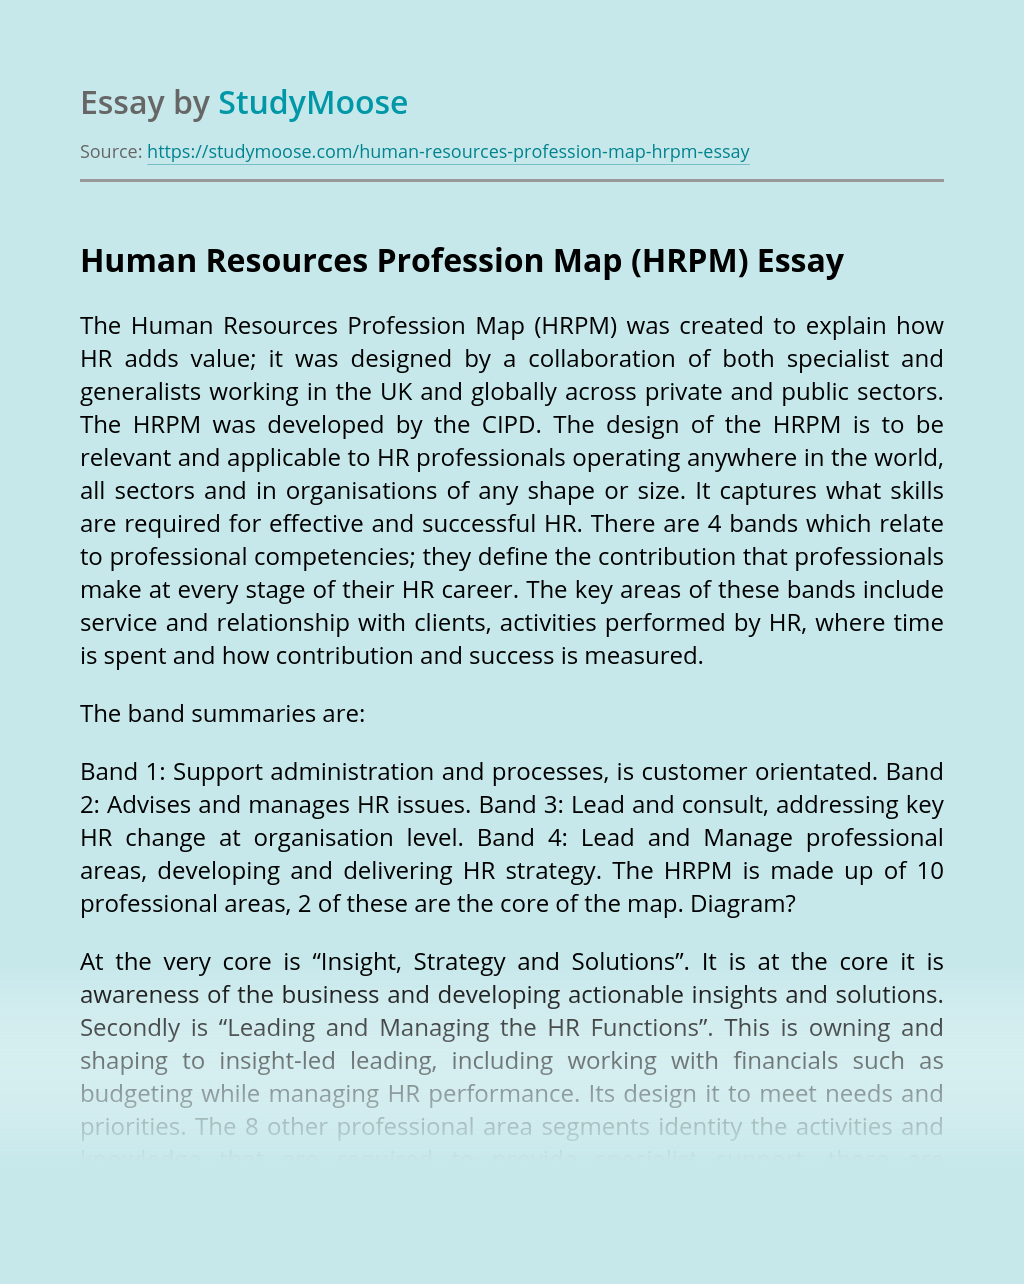 Human Resources Profession Map (HRPM)